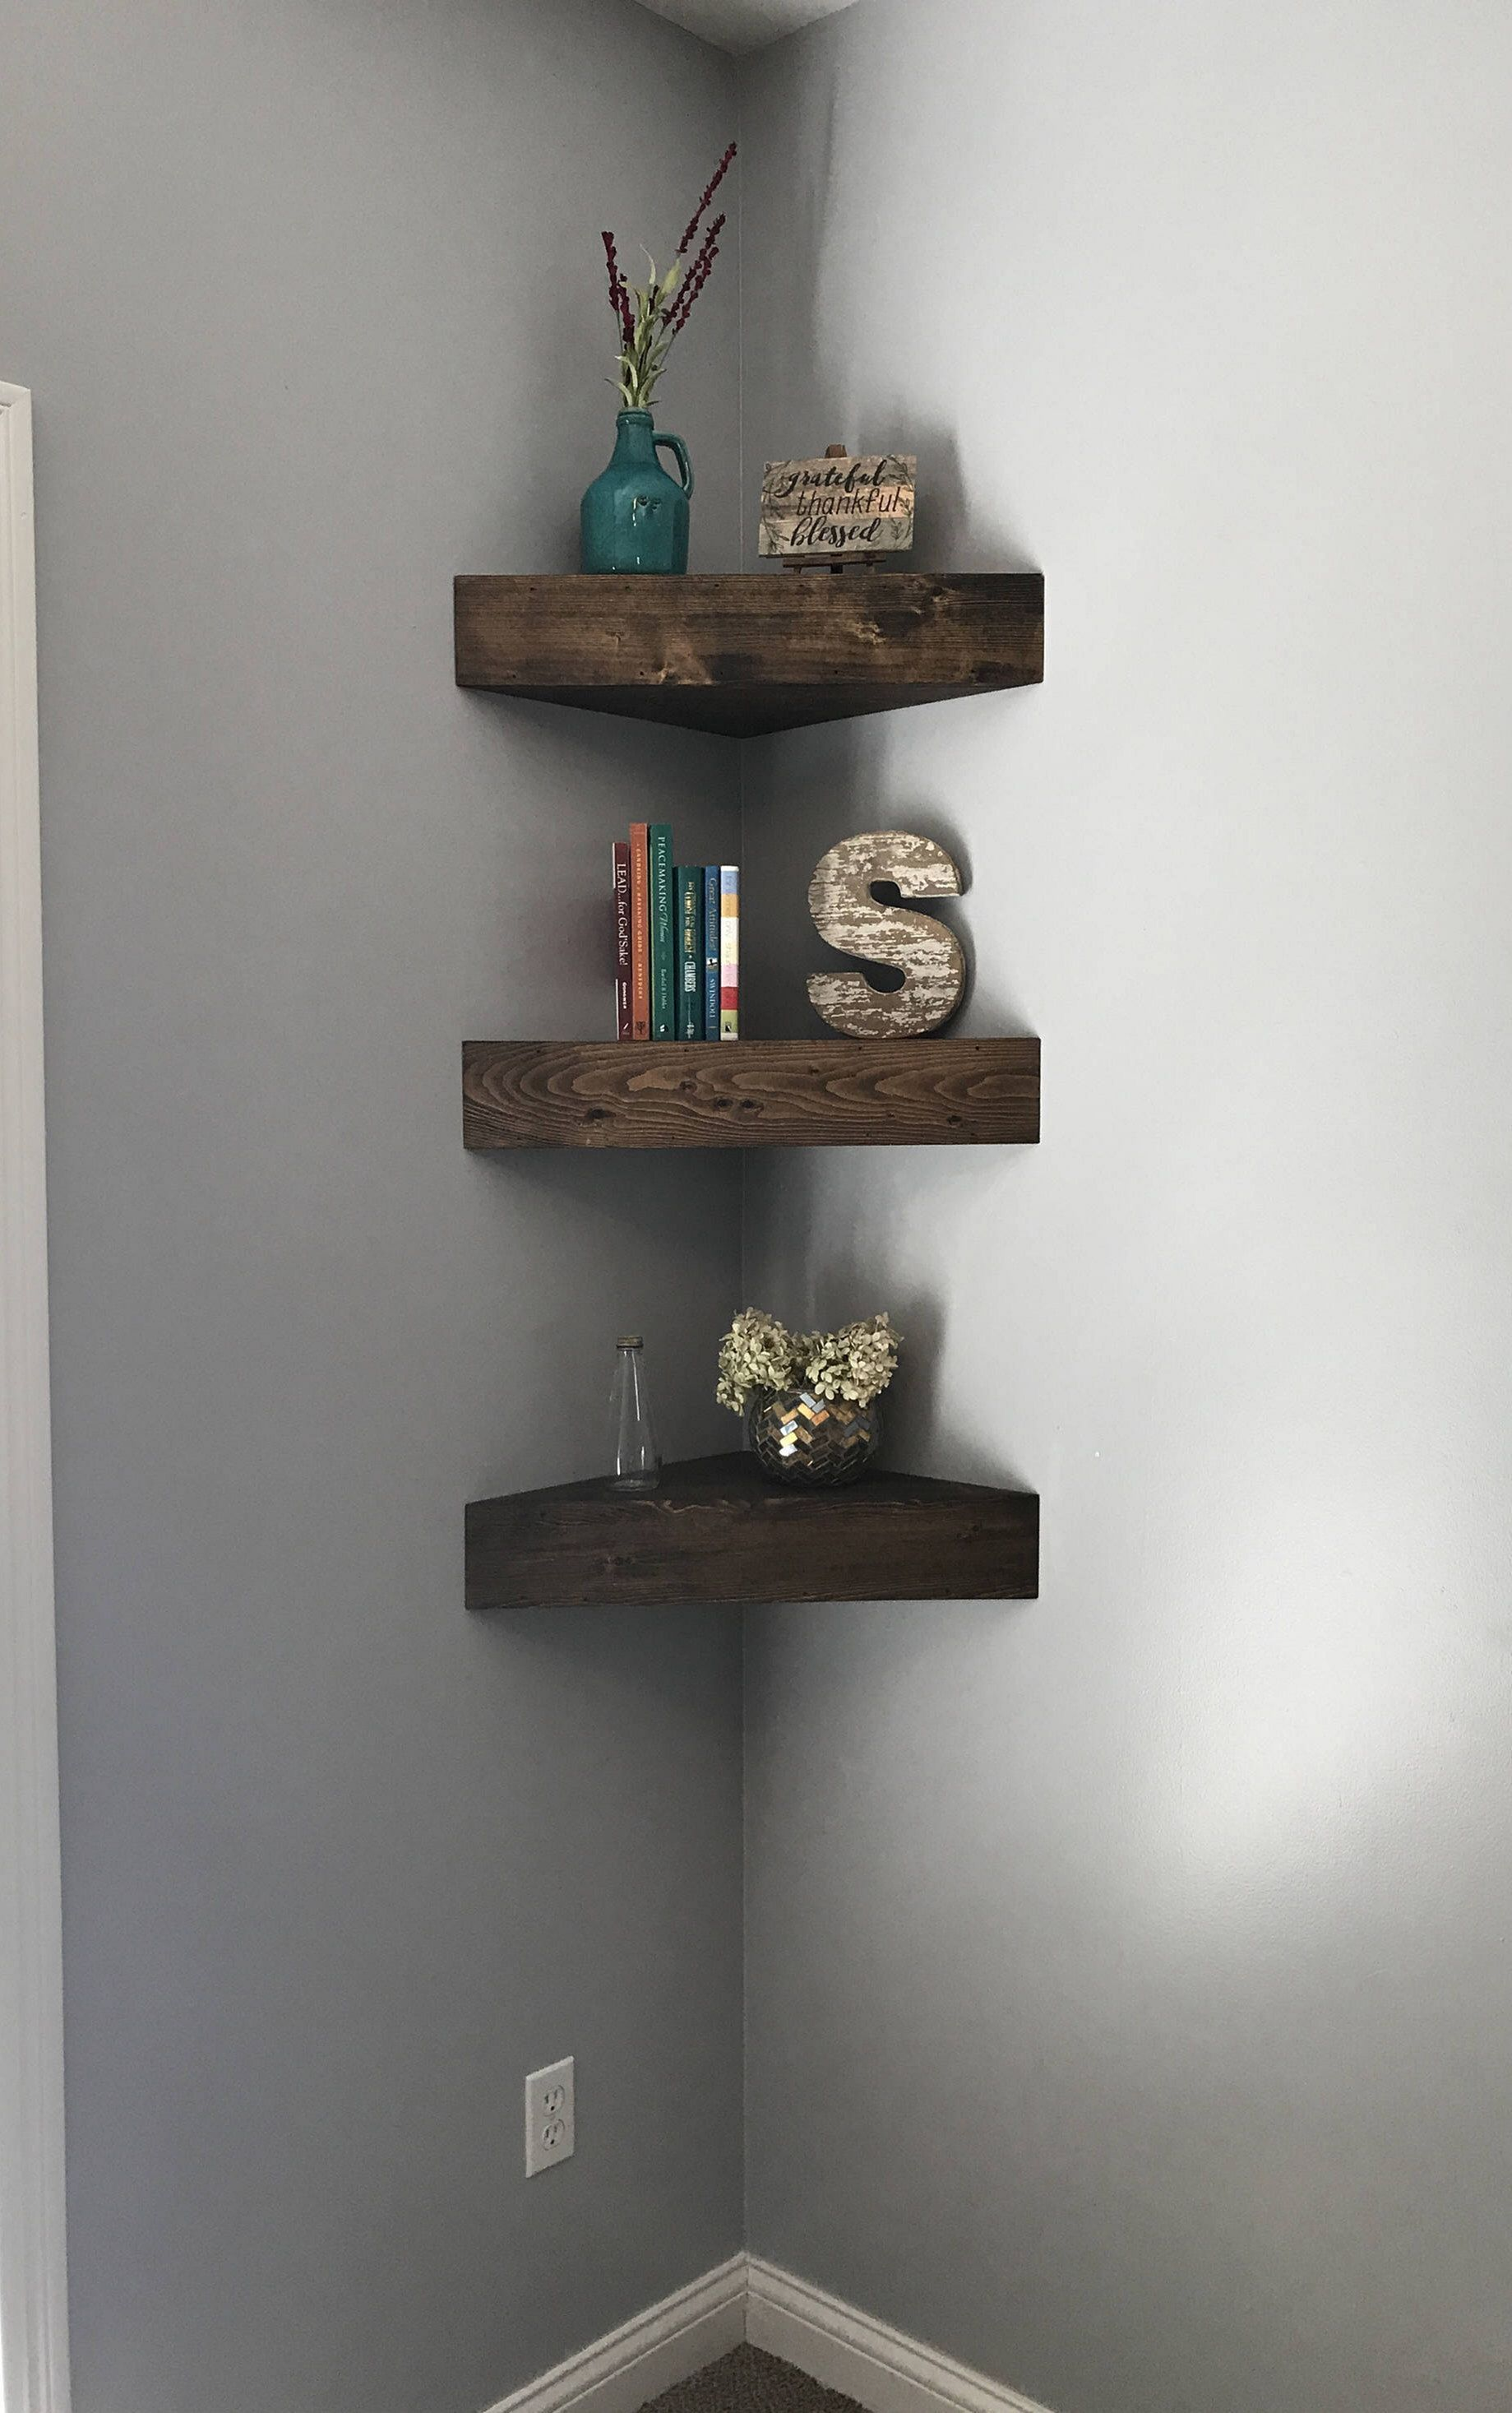 10 Amazing Diy Floating Corner Shelf You Have Must See Rustic Shelves Floating Corner Shelves Nursery Shelves